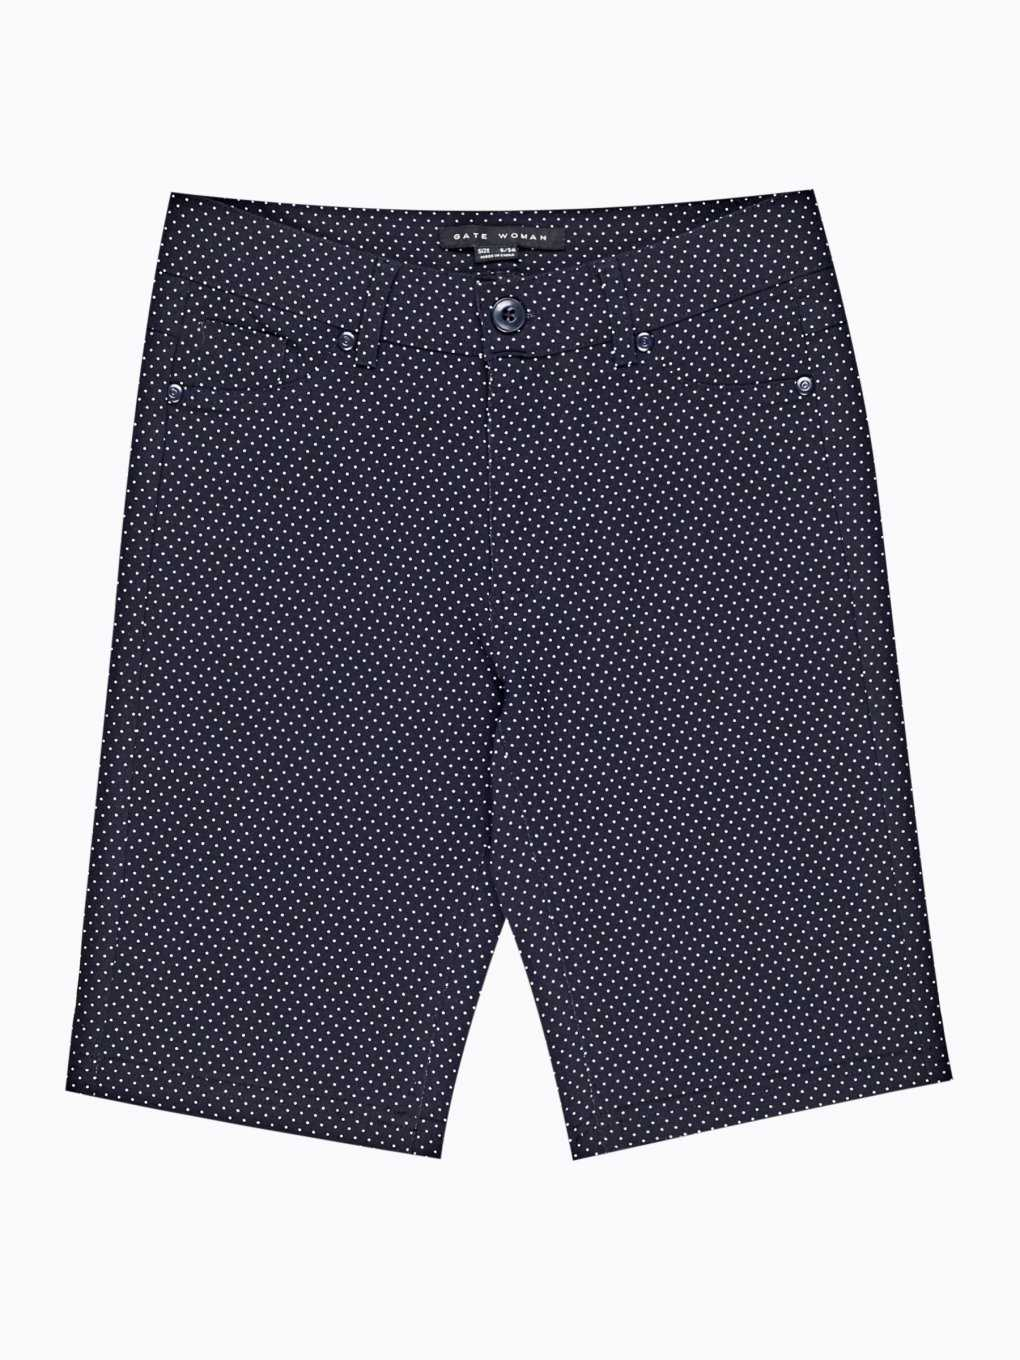 Polka dot print slim shorts